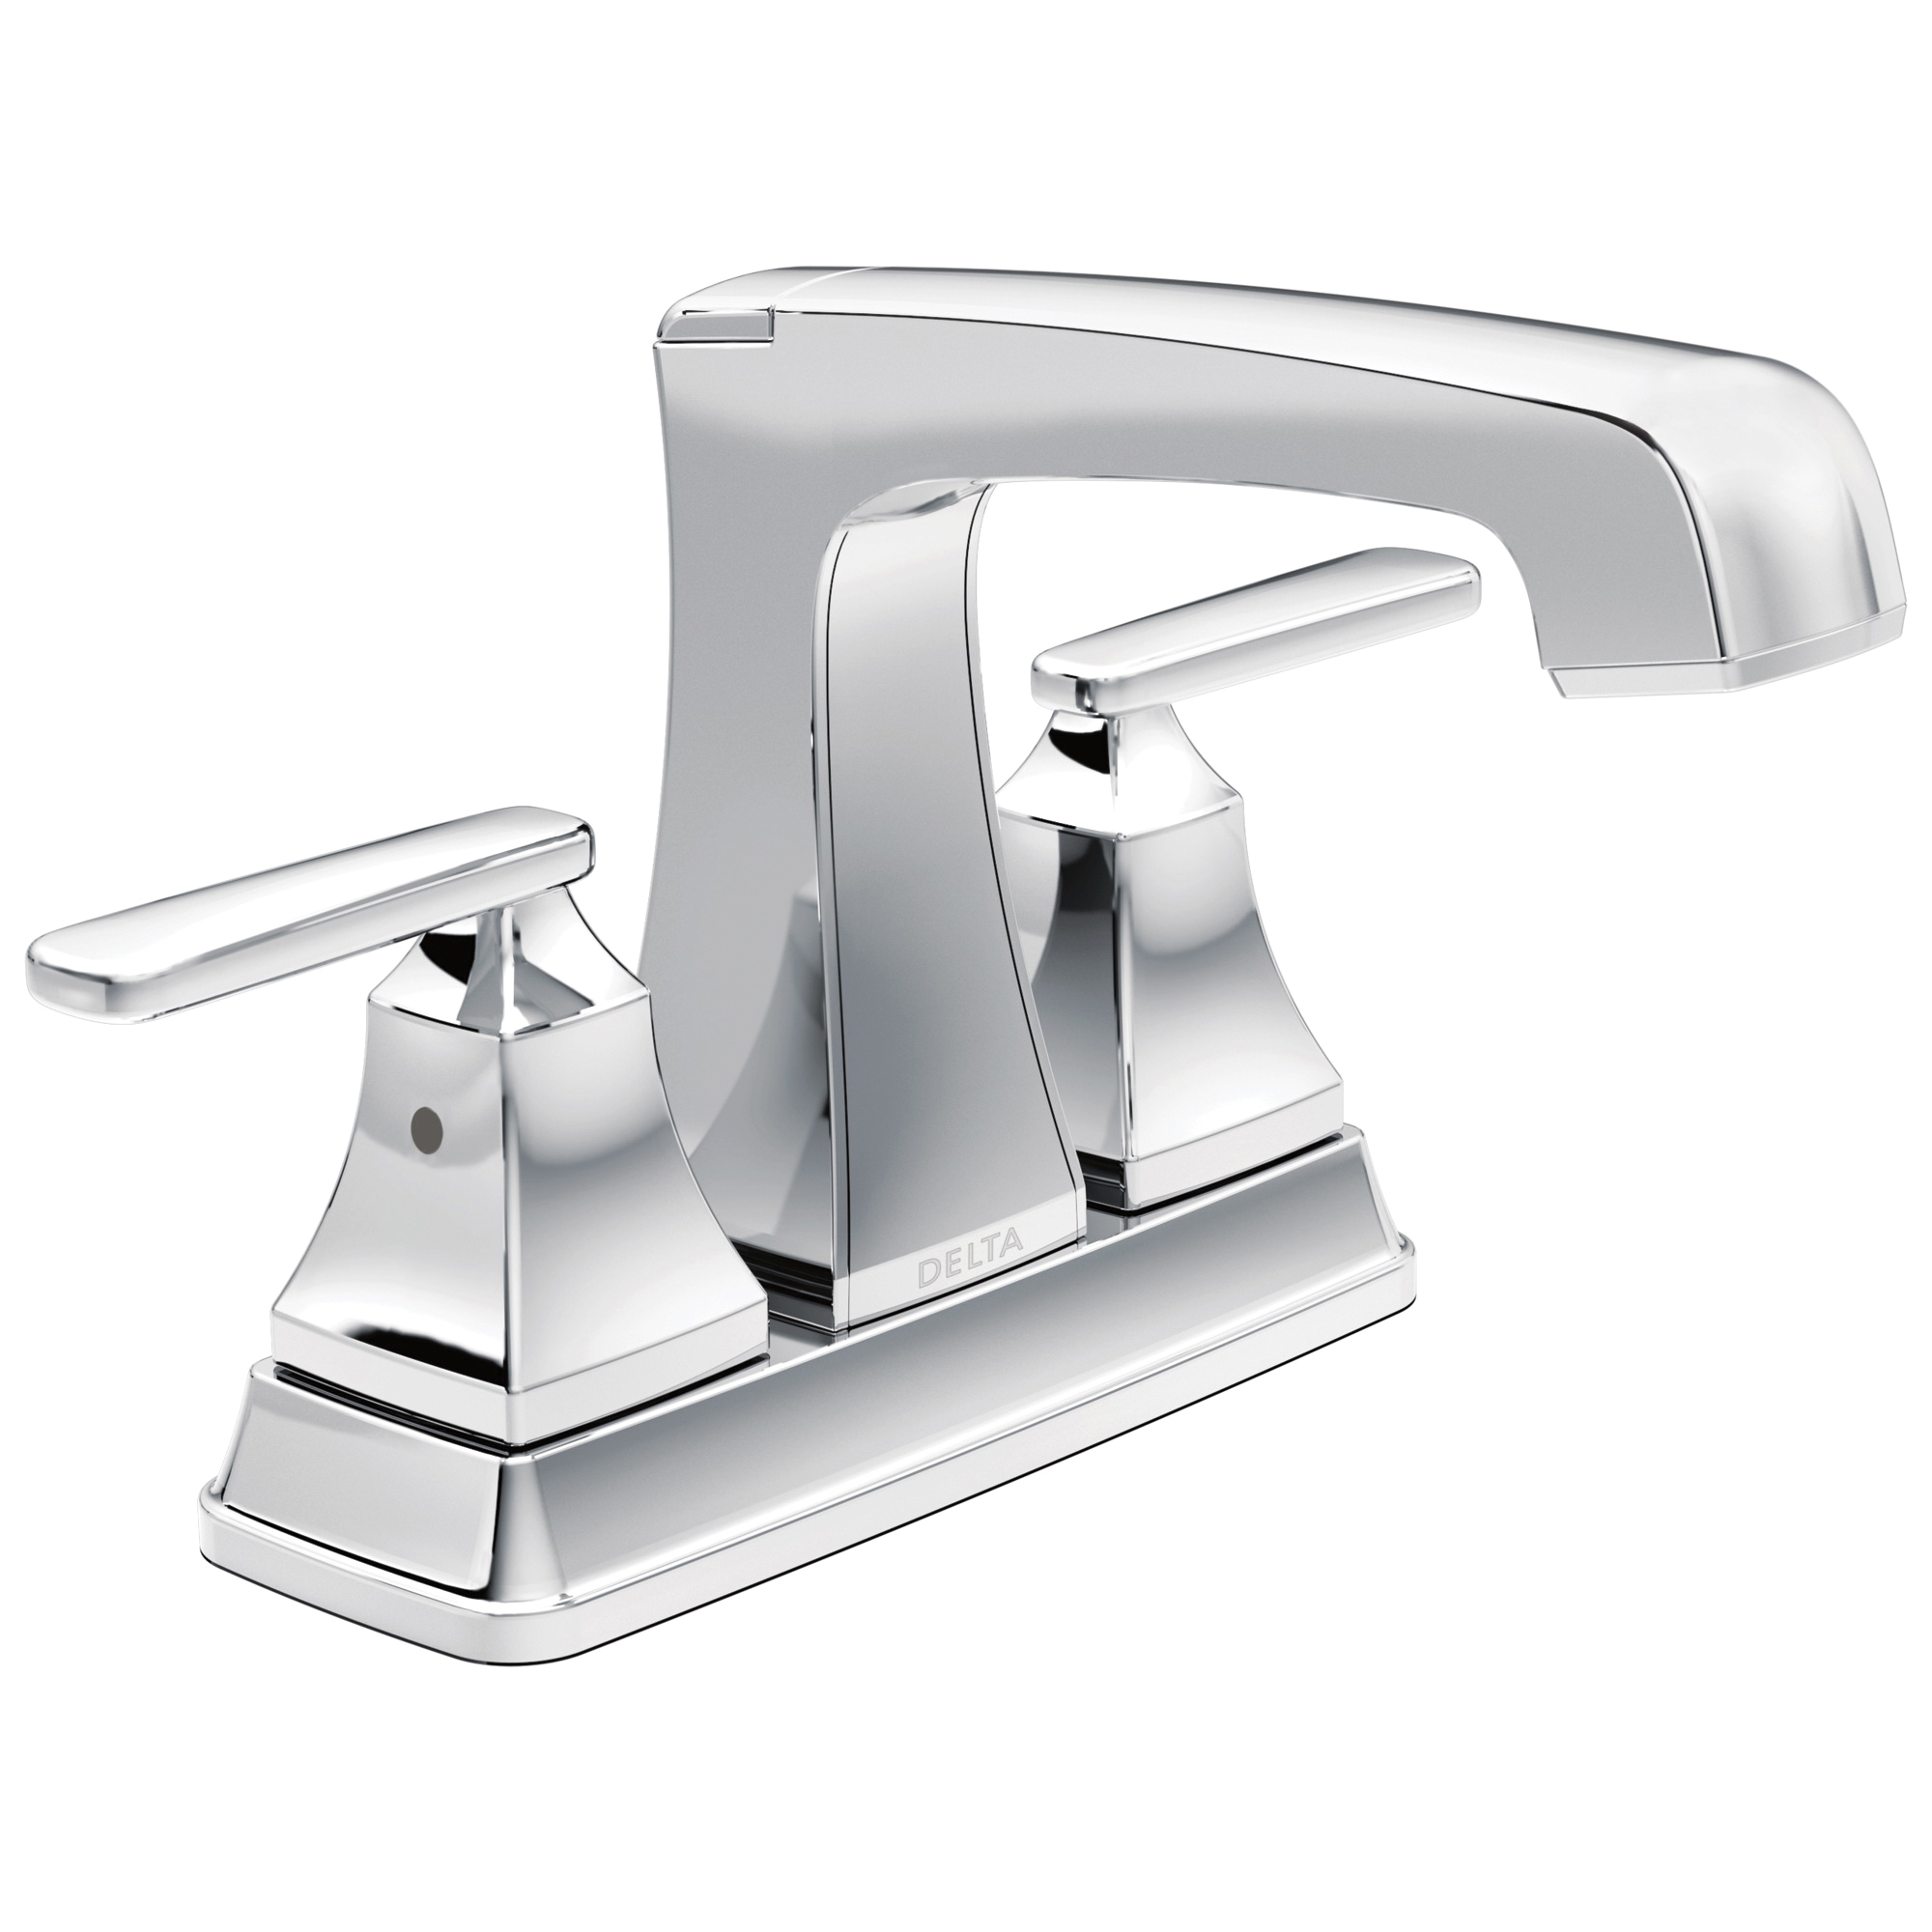 DELTA® 2564-TP-DST Tract-Pack™ Centerset Lavatory Faucet, Ashlyn®, Chrome Plated, 2 Handles, 50/50 Pop-Up Drain, 1.2 gpm